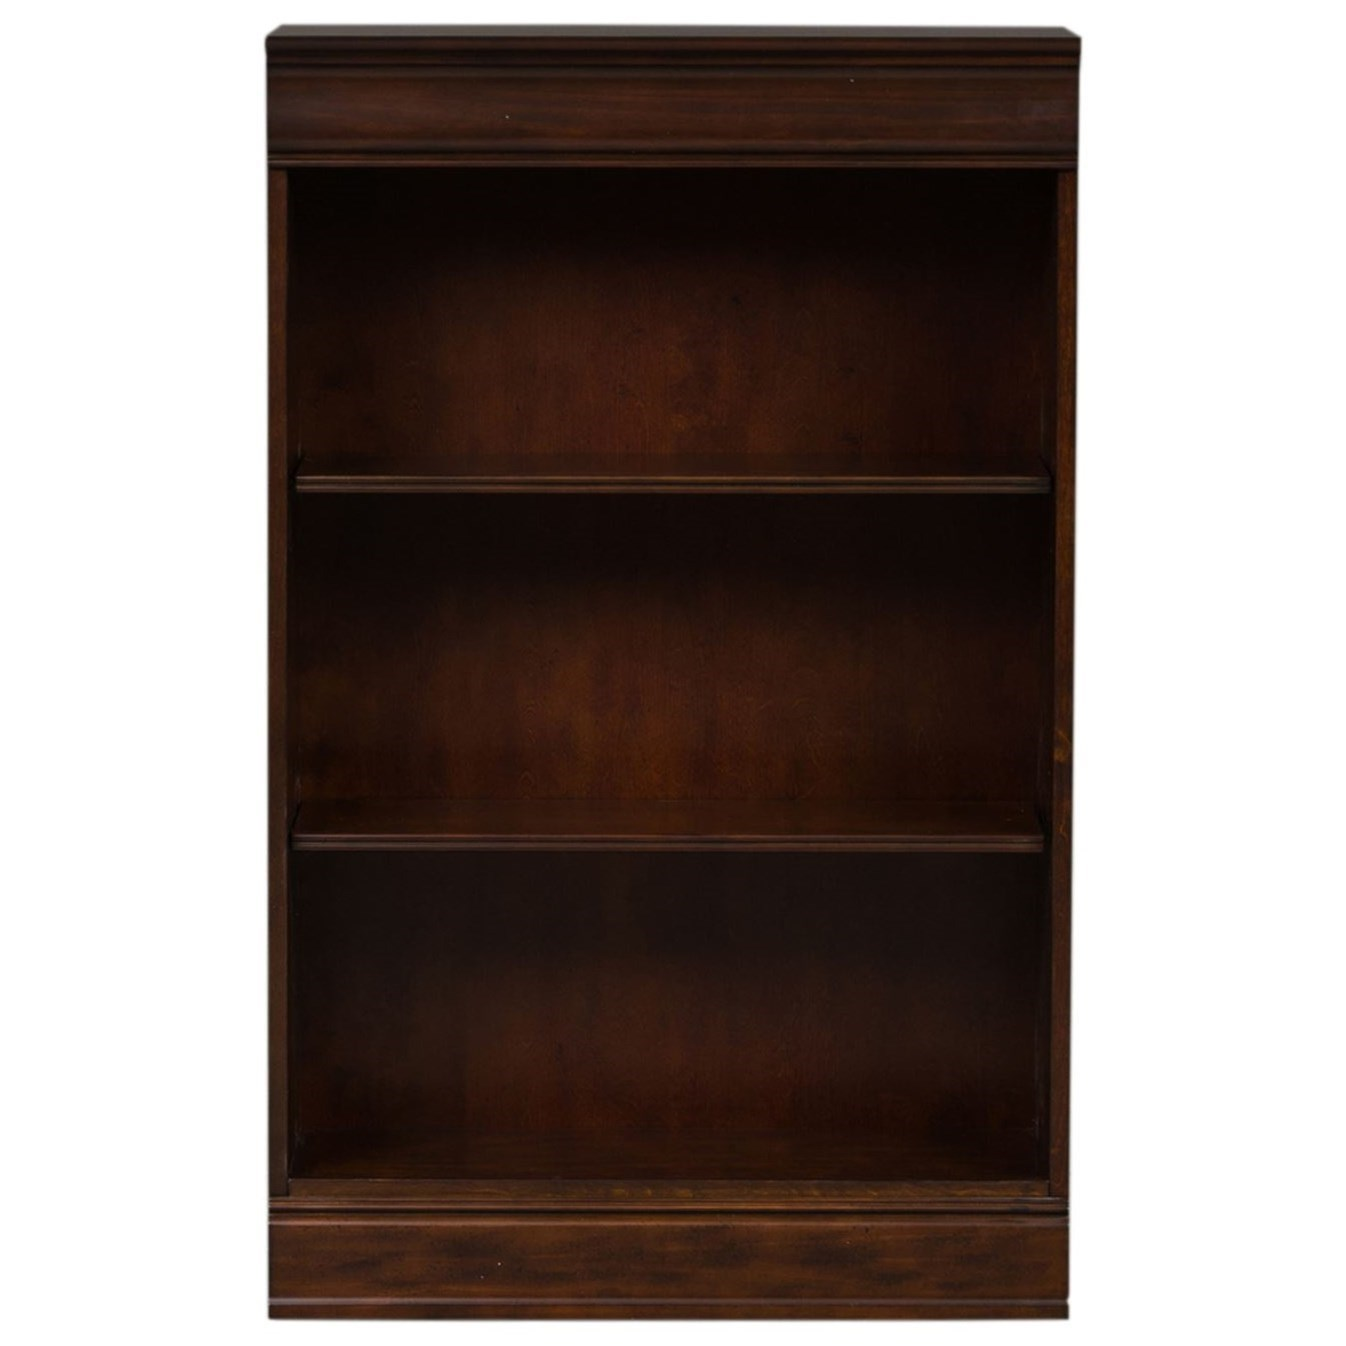 Brayton Manor Jr Executive 48 Inch Bookcase by Libby at Walker's Furniture